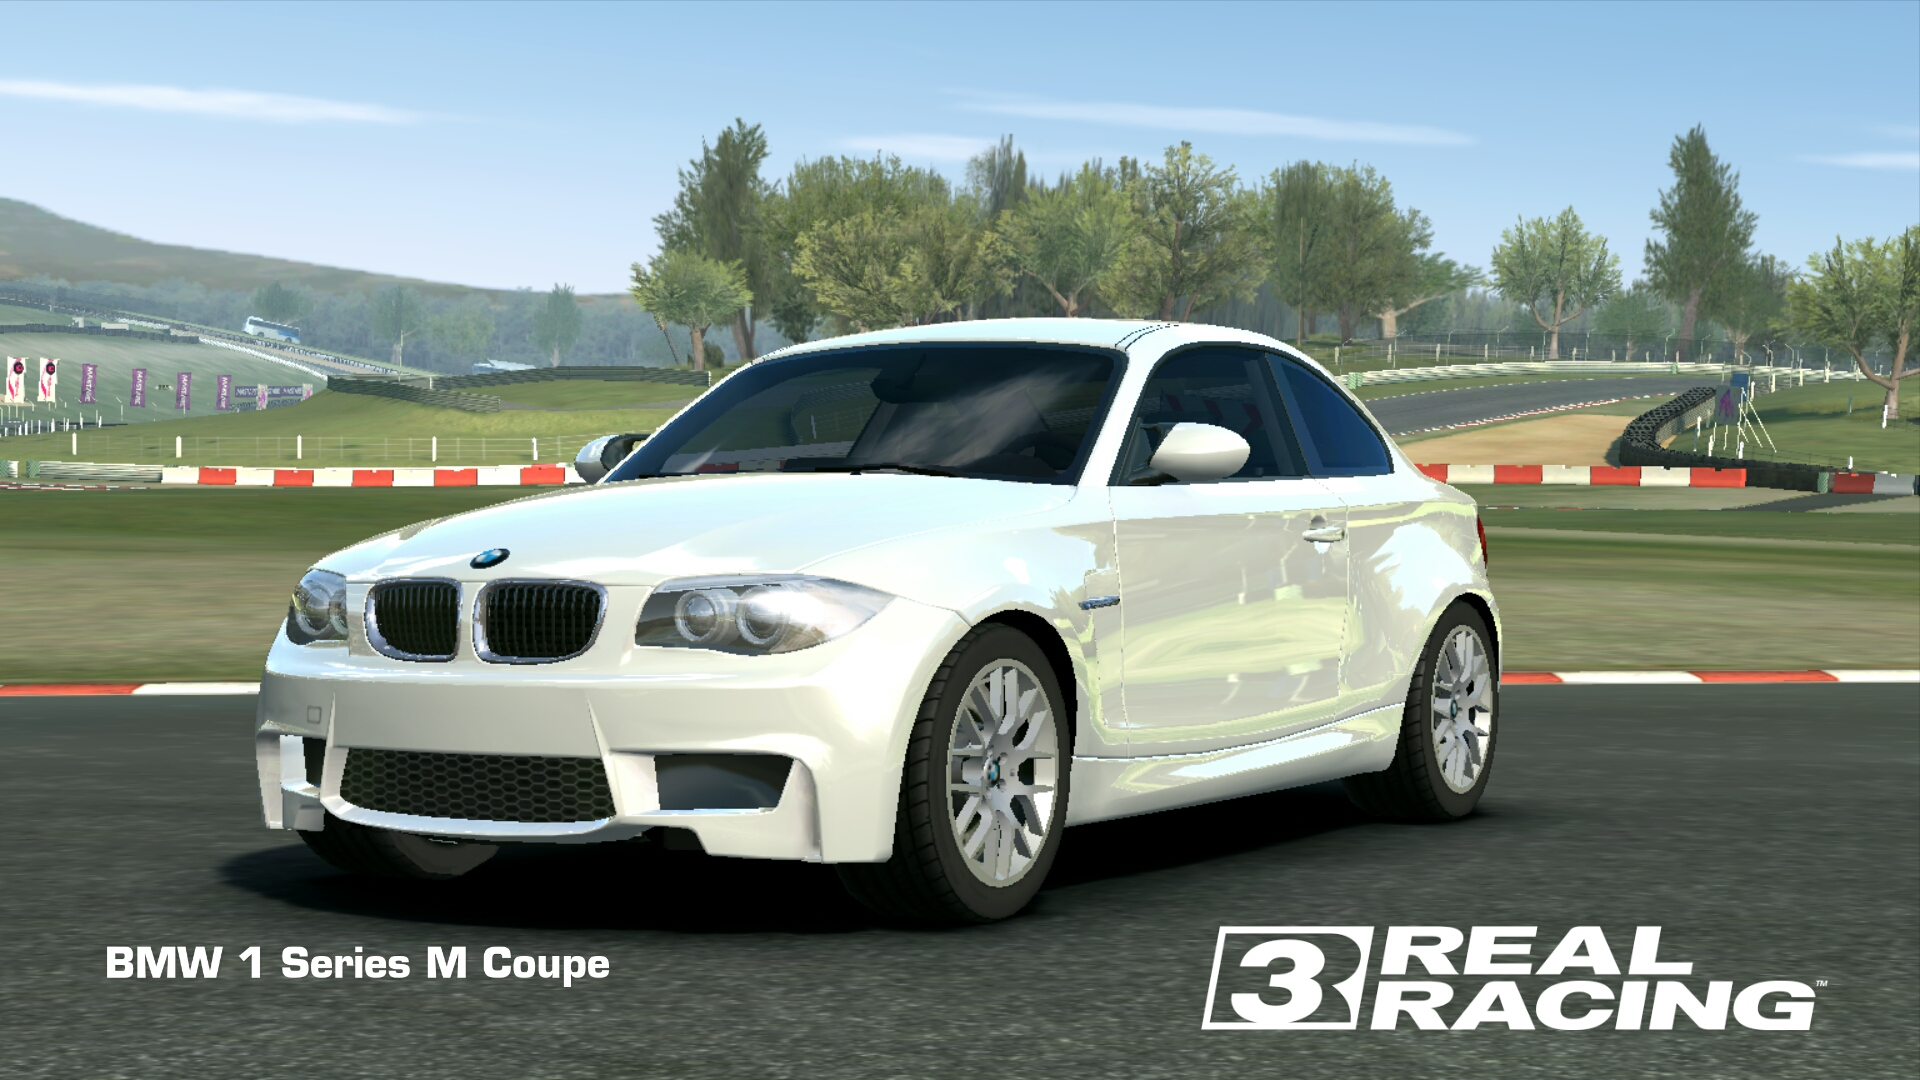 Showcase BMW 1 Series M Coupe